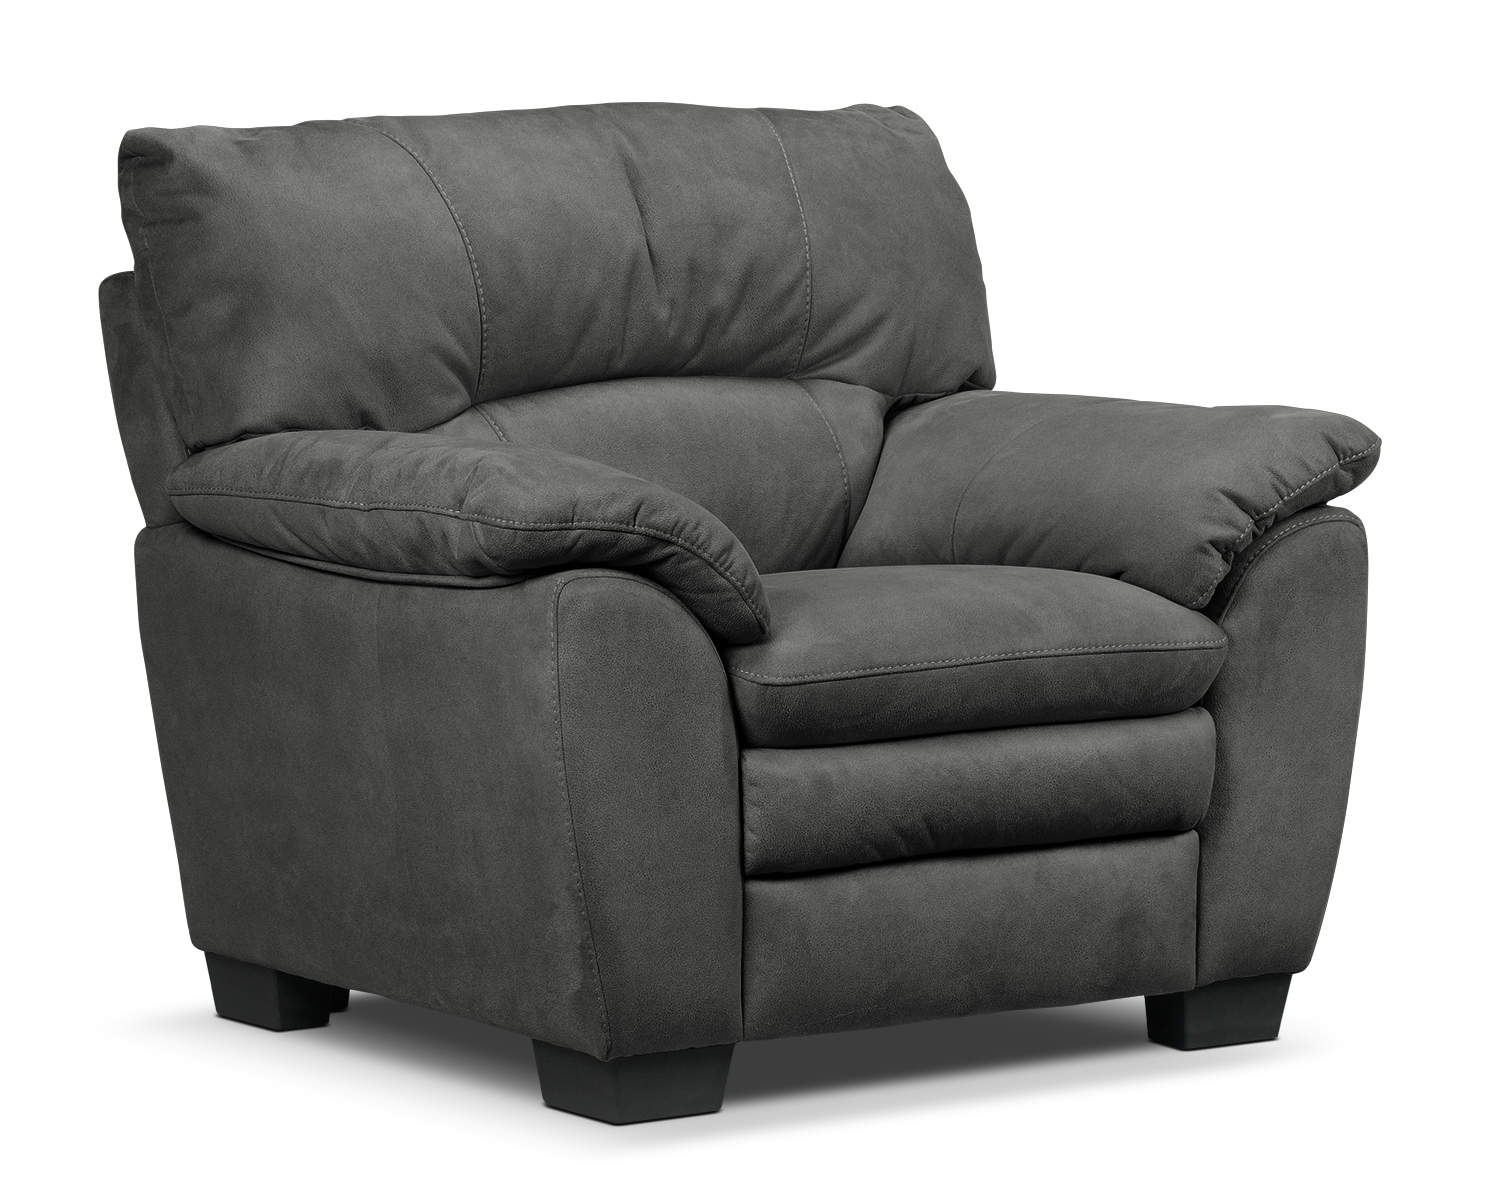 Kelleher Chair - Charcoal